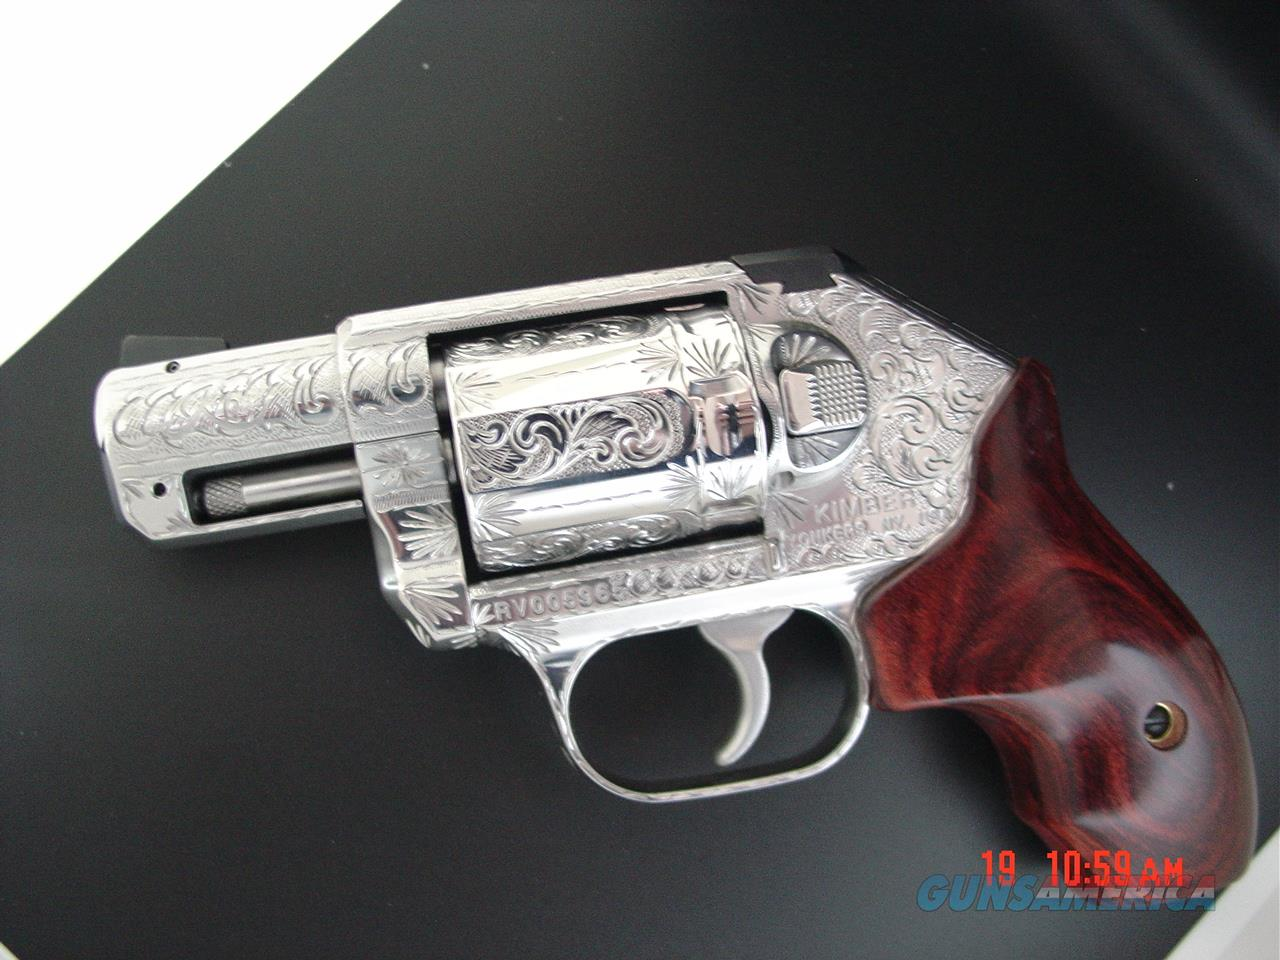 Kimber K6S 357 magnum,fully engraved & polished by Flannery Engraving,6  shots,Rosewood grips,never fired,in box with manual etc awesome work of art  !!